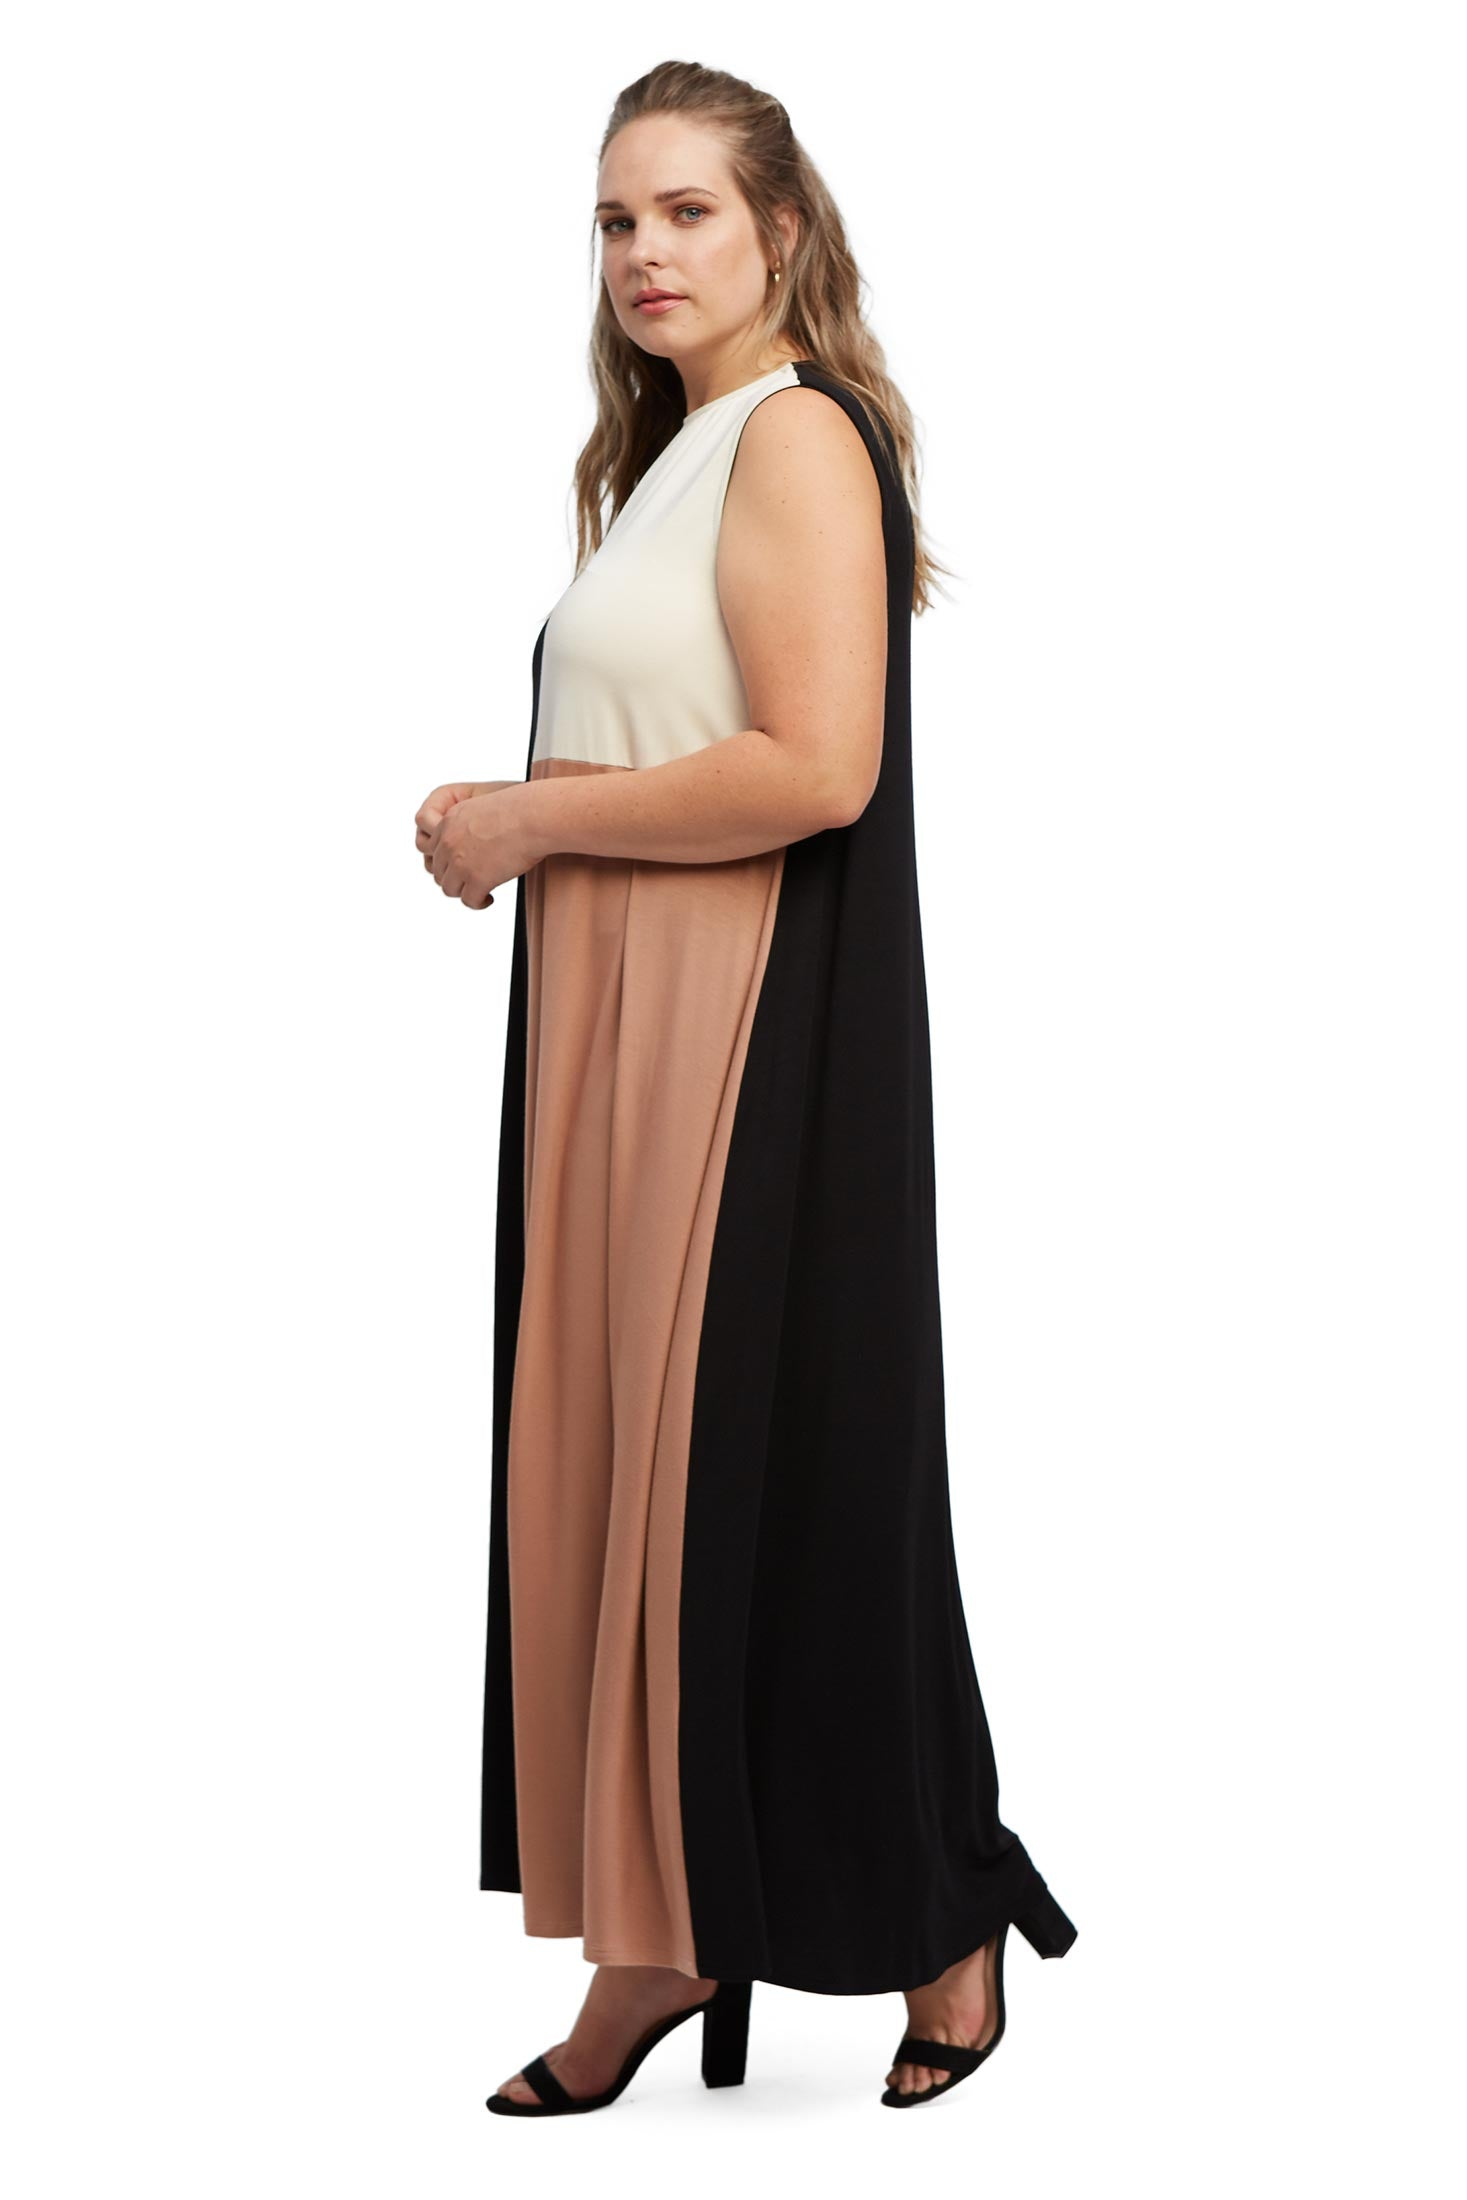 Tricolor Dress - Black / Dulce / Cream, Plus Size